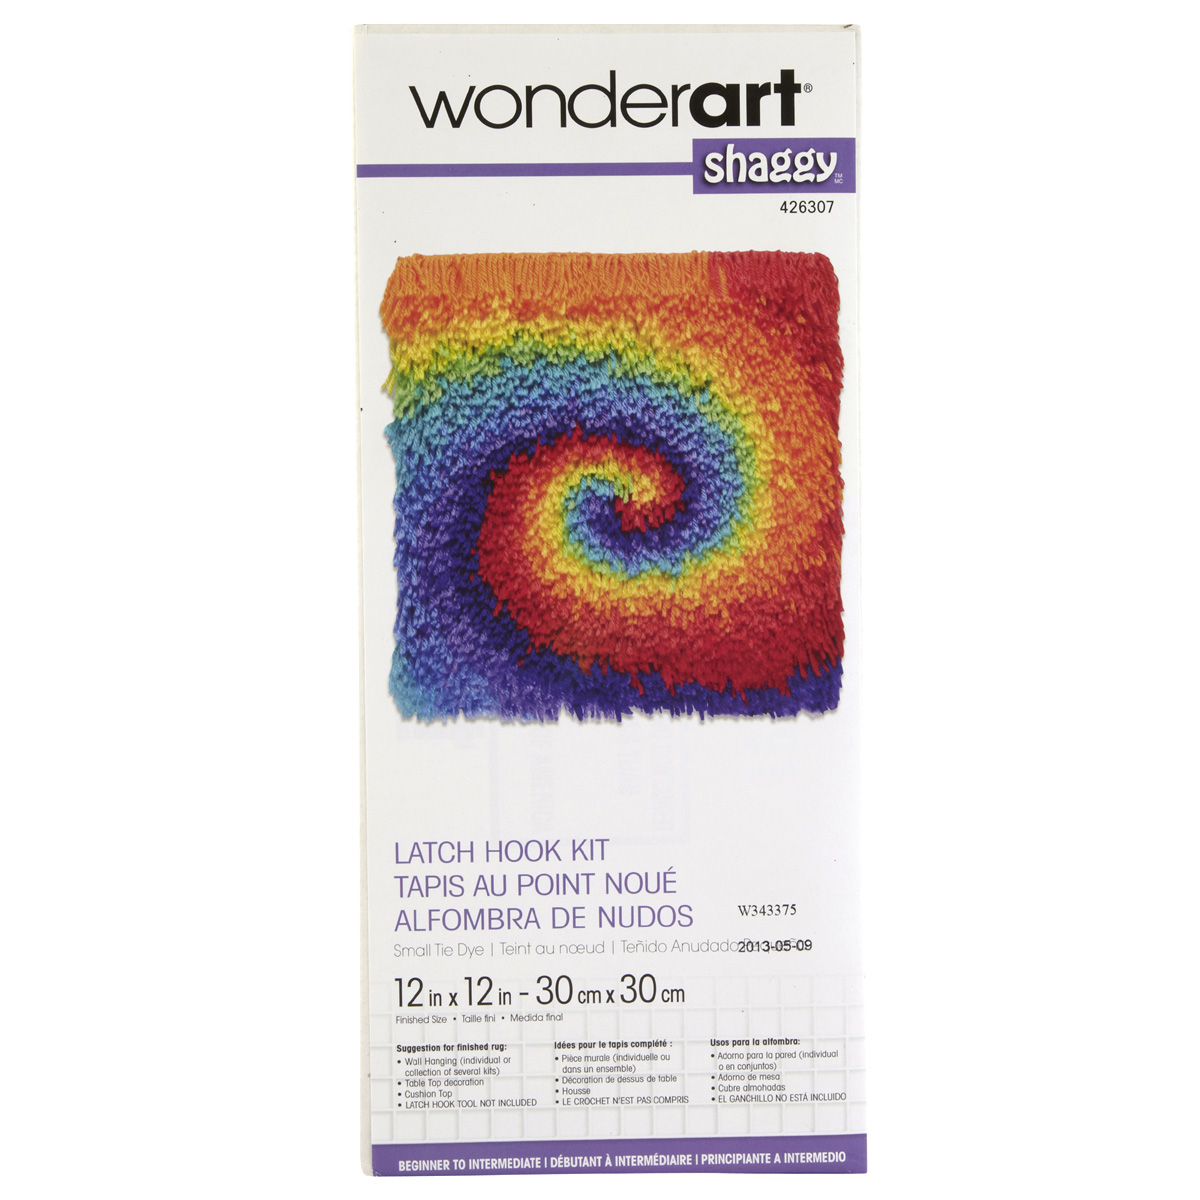 Wonderart Shaggy Latch Hook Kit TieDye